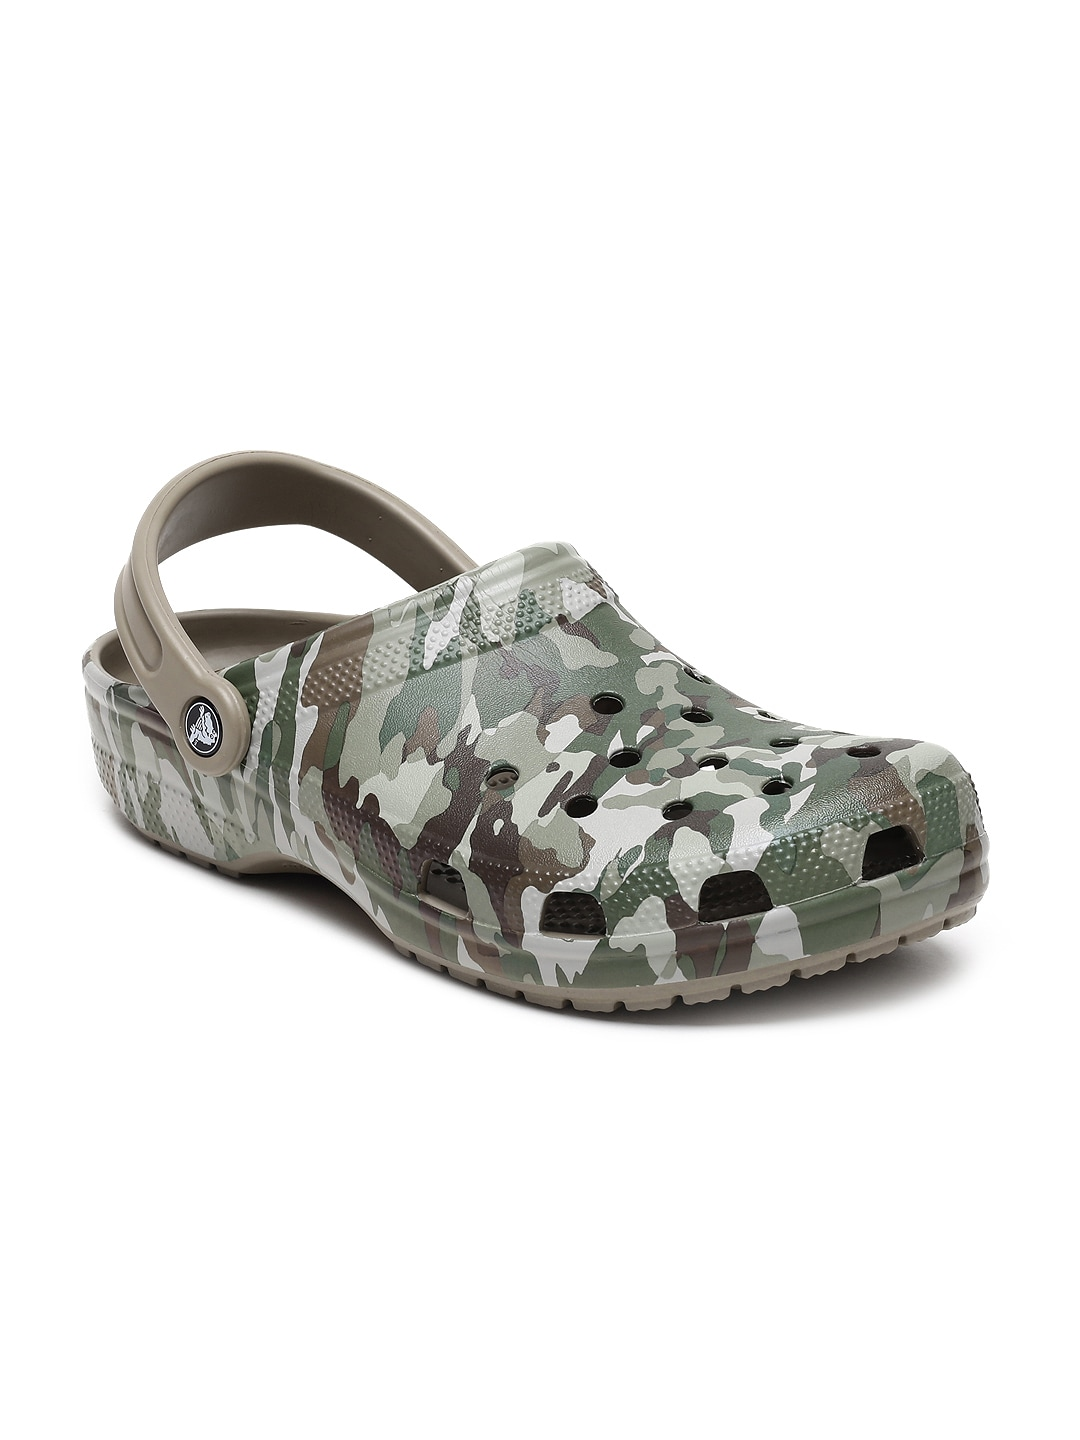 9edc1e3057b8 Crocs Men Footwear - Buy Crocs Shoes and Sandals For Men Online in India